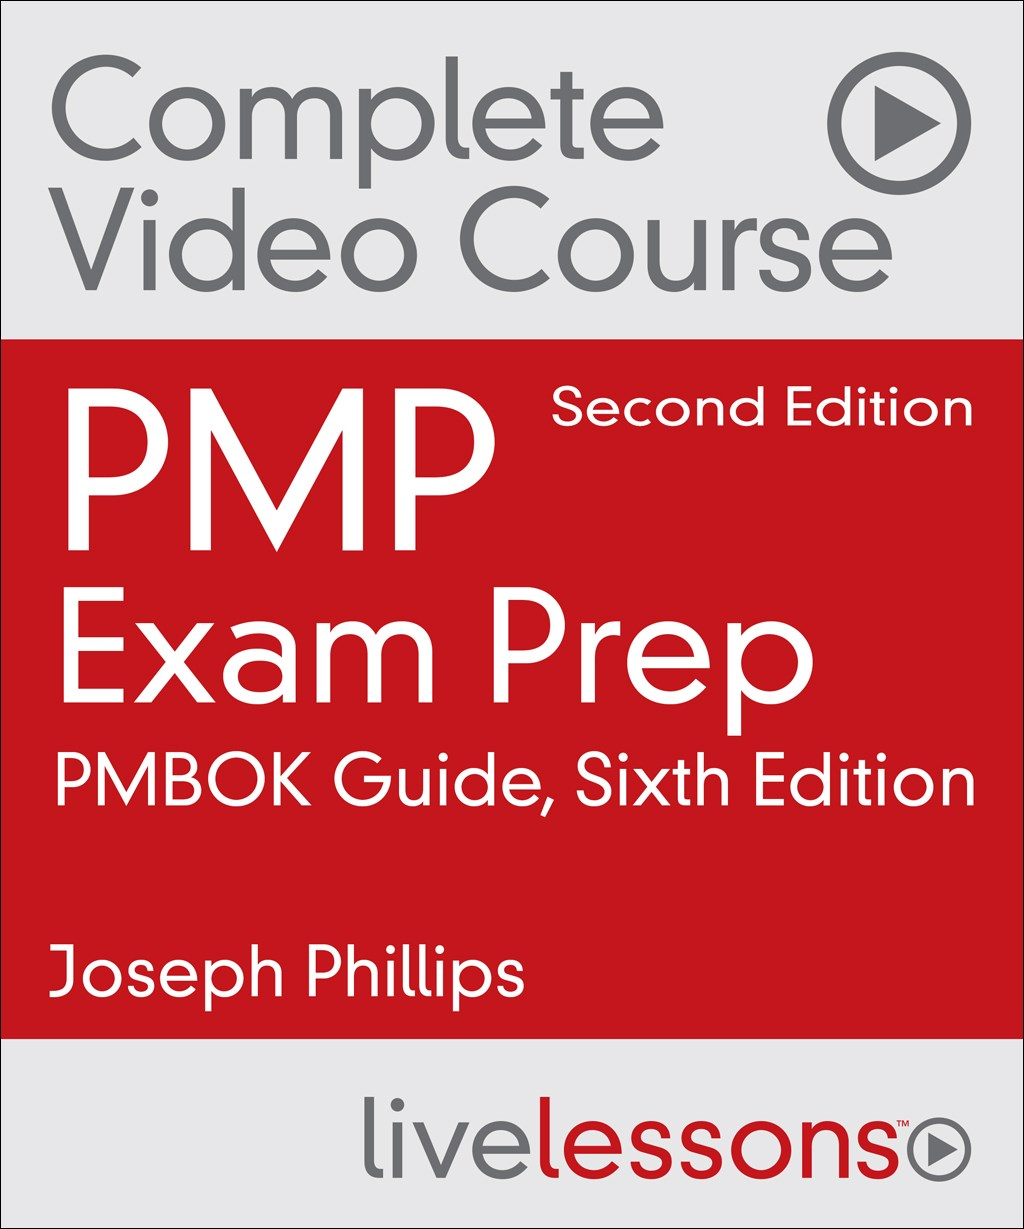 PMP Exam Prep Complete Video Course and Practice Test